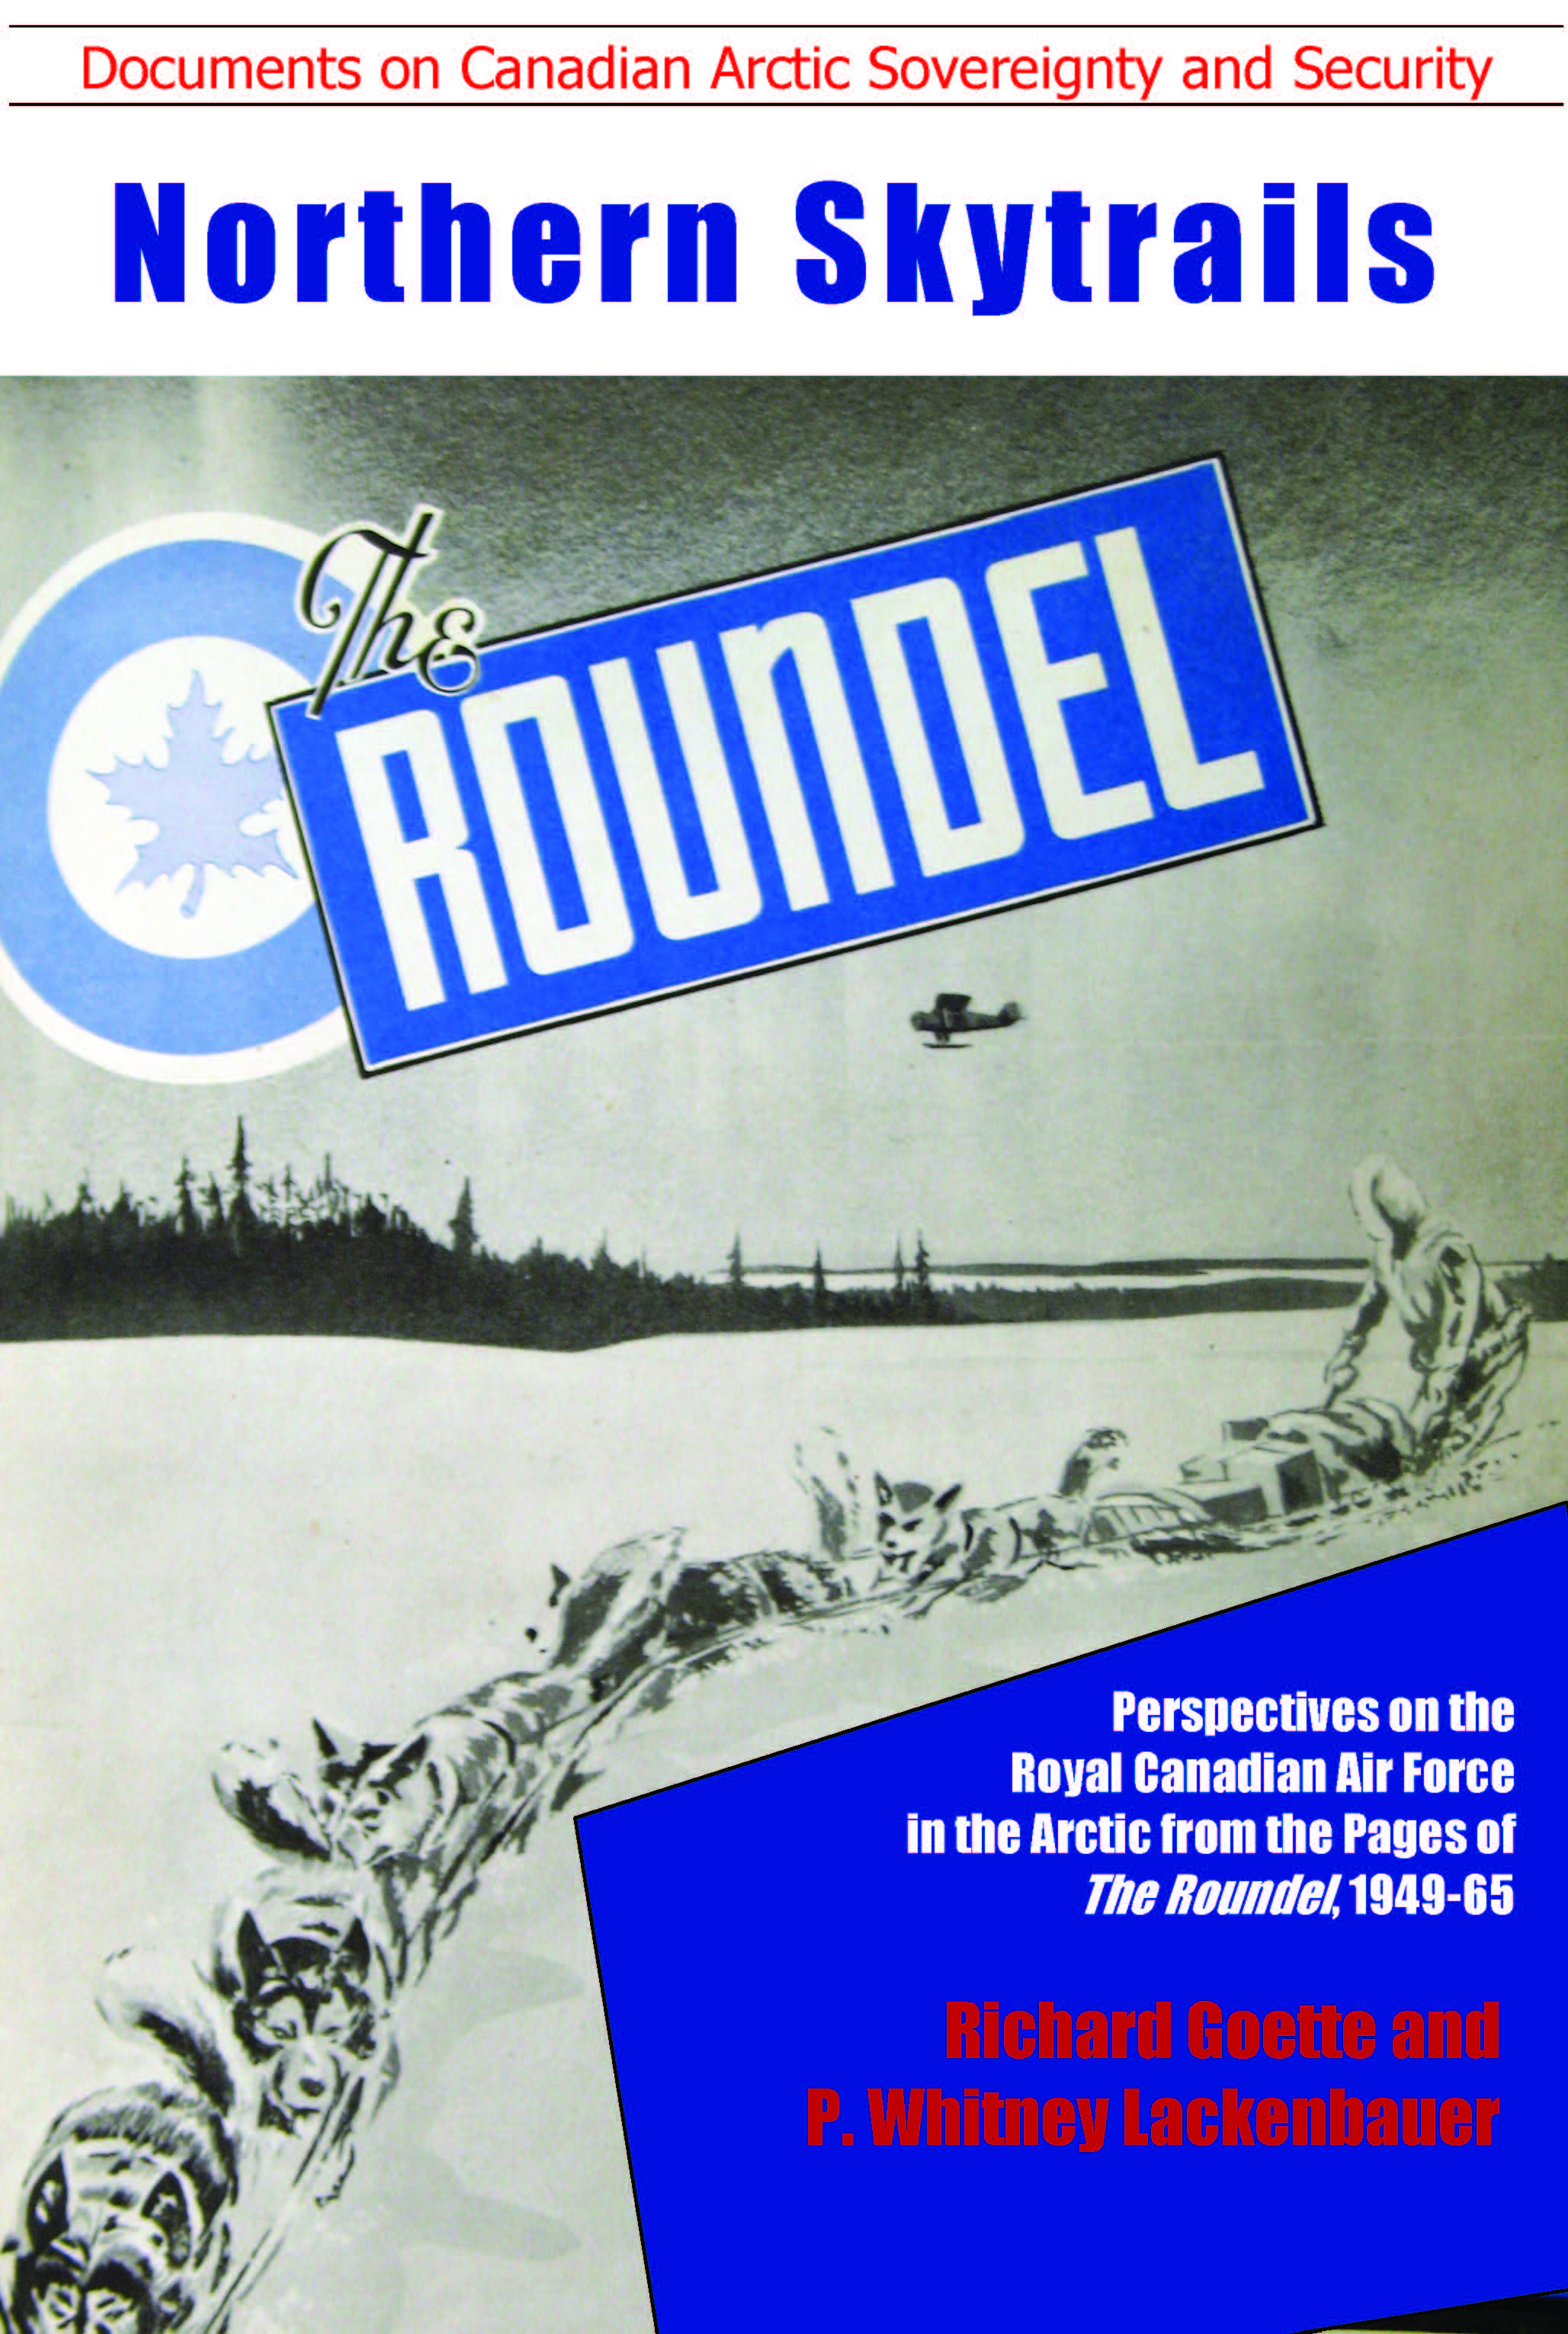 Northern Skytrails: Perspectives on the Royal Canadian Air Force in the Arctic from the Pages of The Roundel, 1949-65